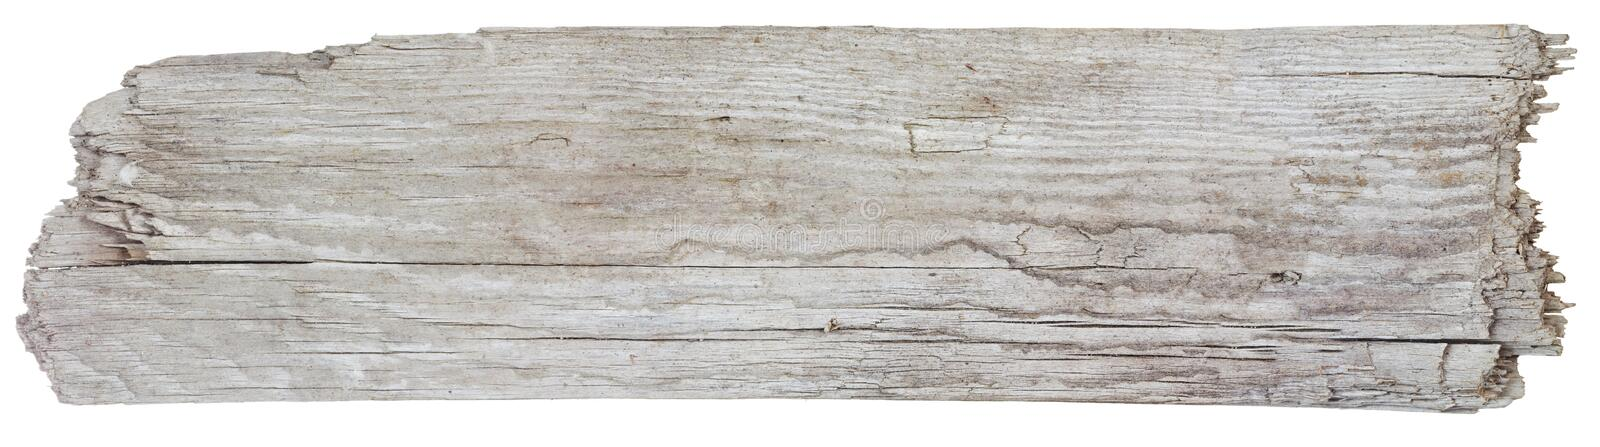 Driftwood plank royalty free stock images